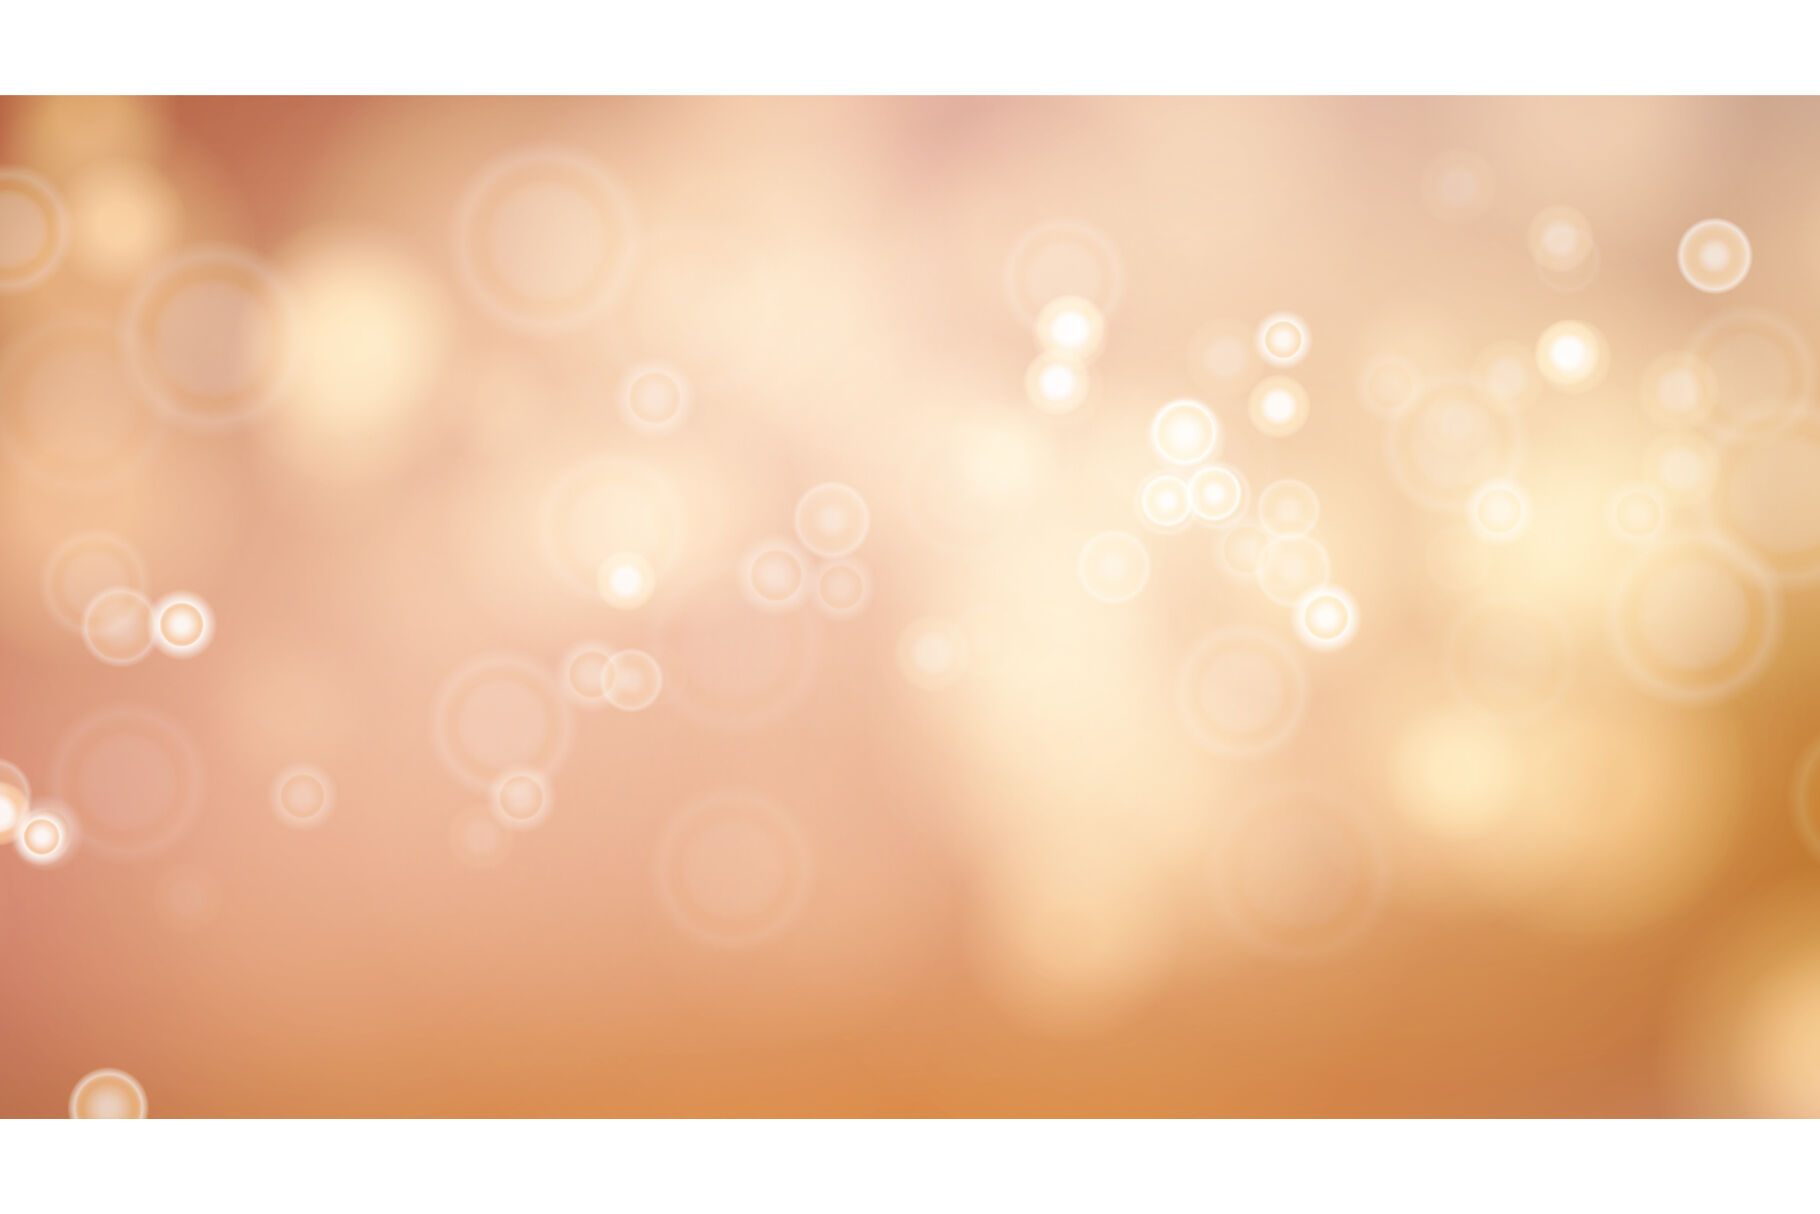 Abstract Autumn Nature Background Vector Blurred Warm Bokeh 1820x1214